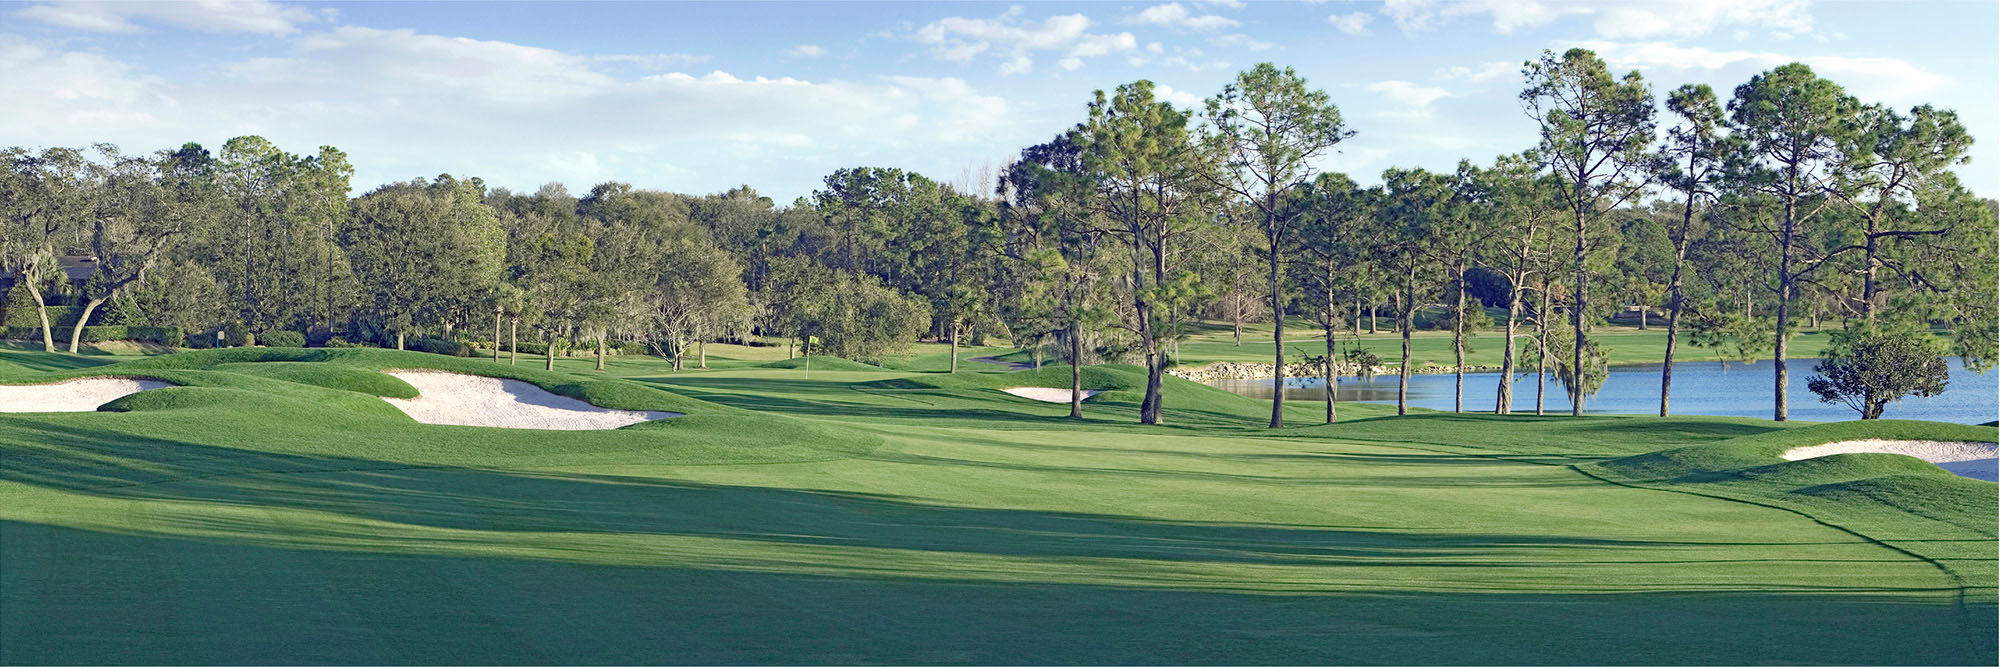 Golf Course Image - Bay Hill No. 5